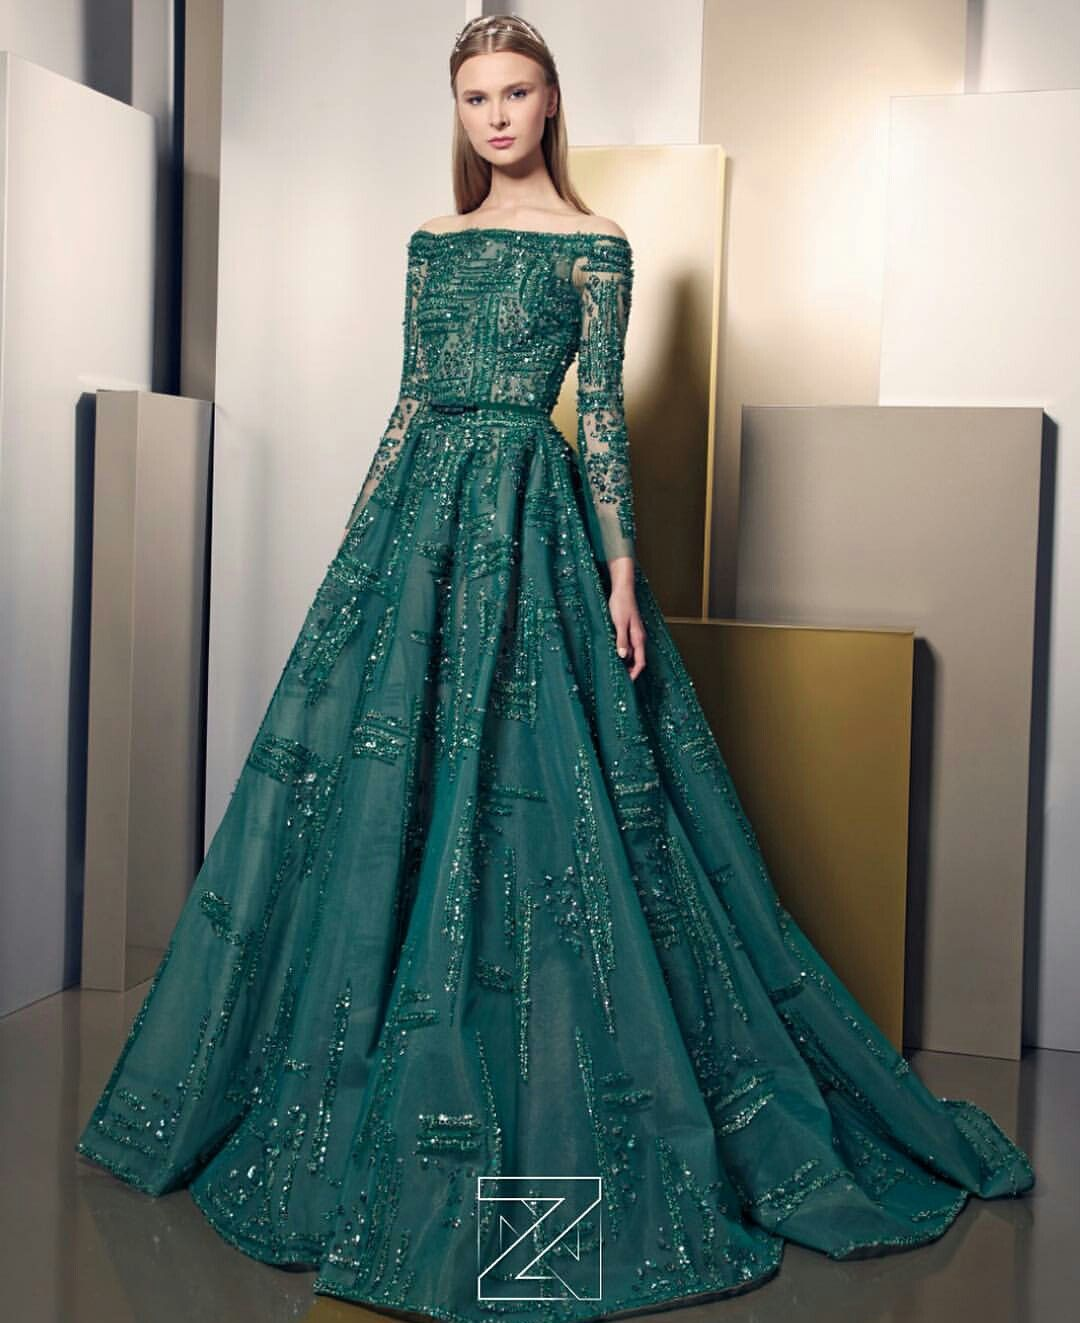 Ziad Nakad | uuuuuu | Pinterest | Gowns, Designer dresses and Prom